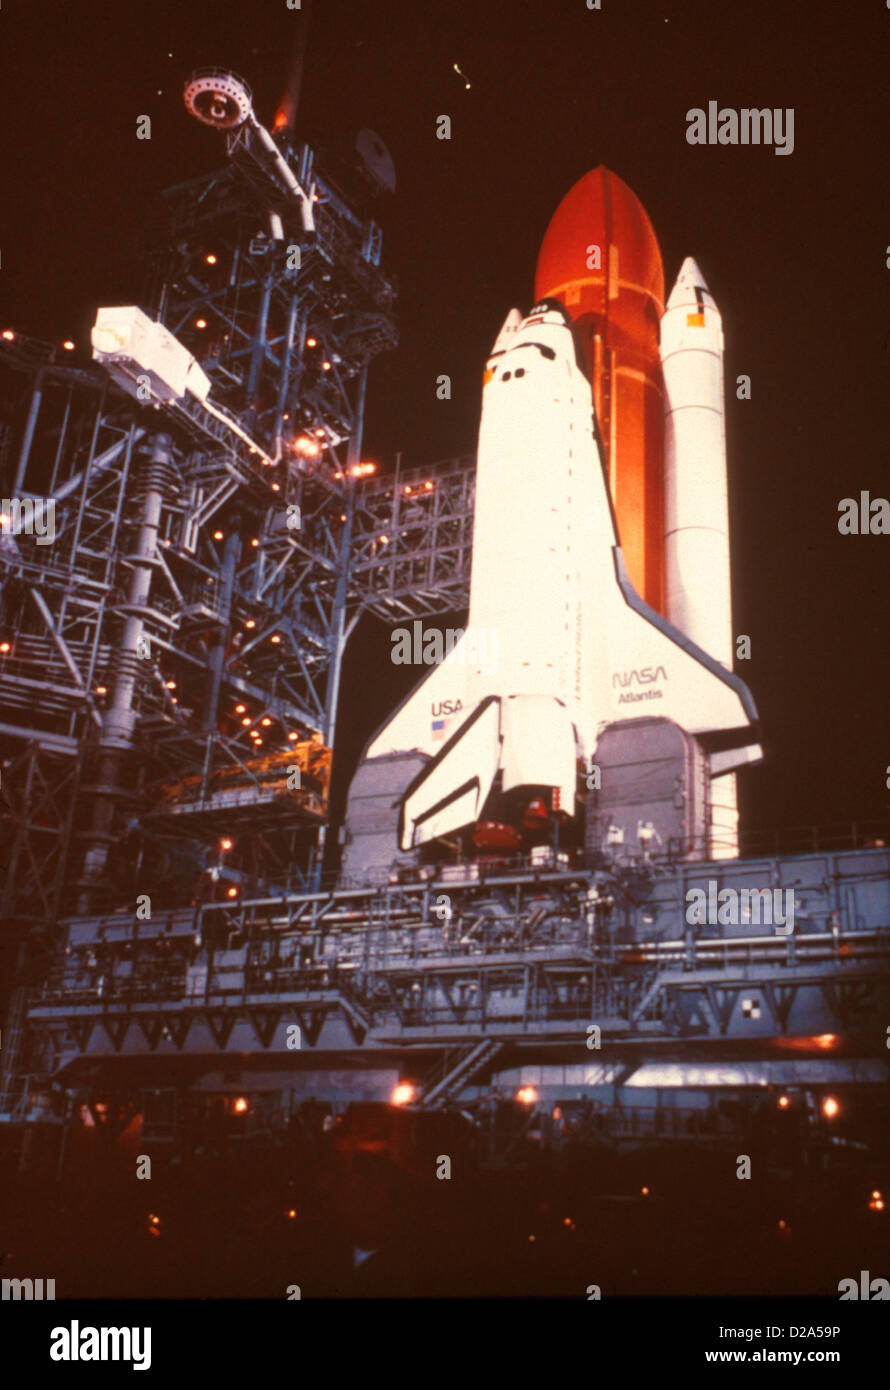 Stacked Space Shuttle For Mission 51-J With Orbiter Atlantis, August 1985. - Stock Image